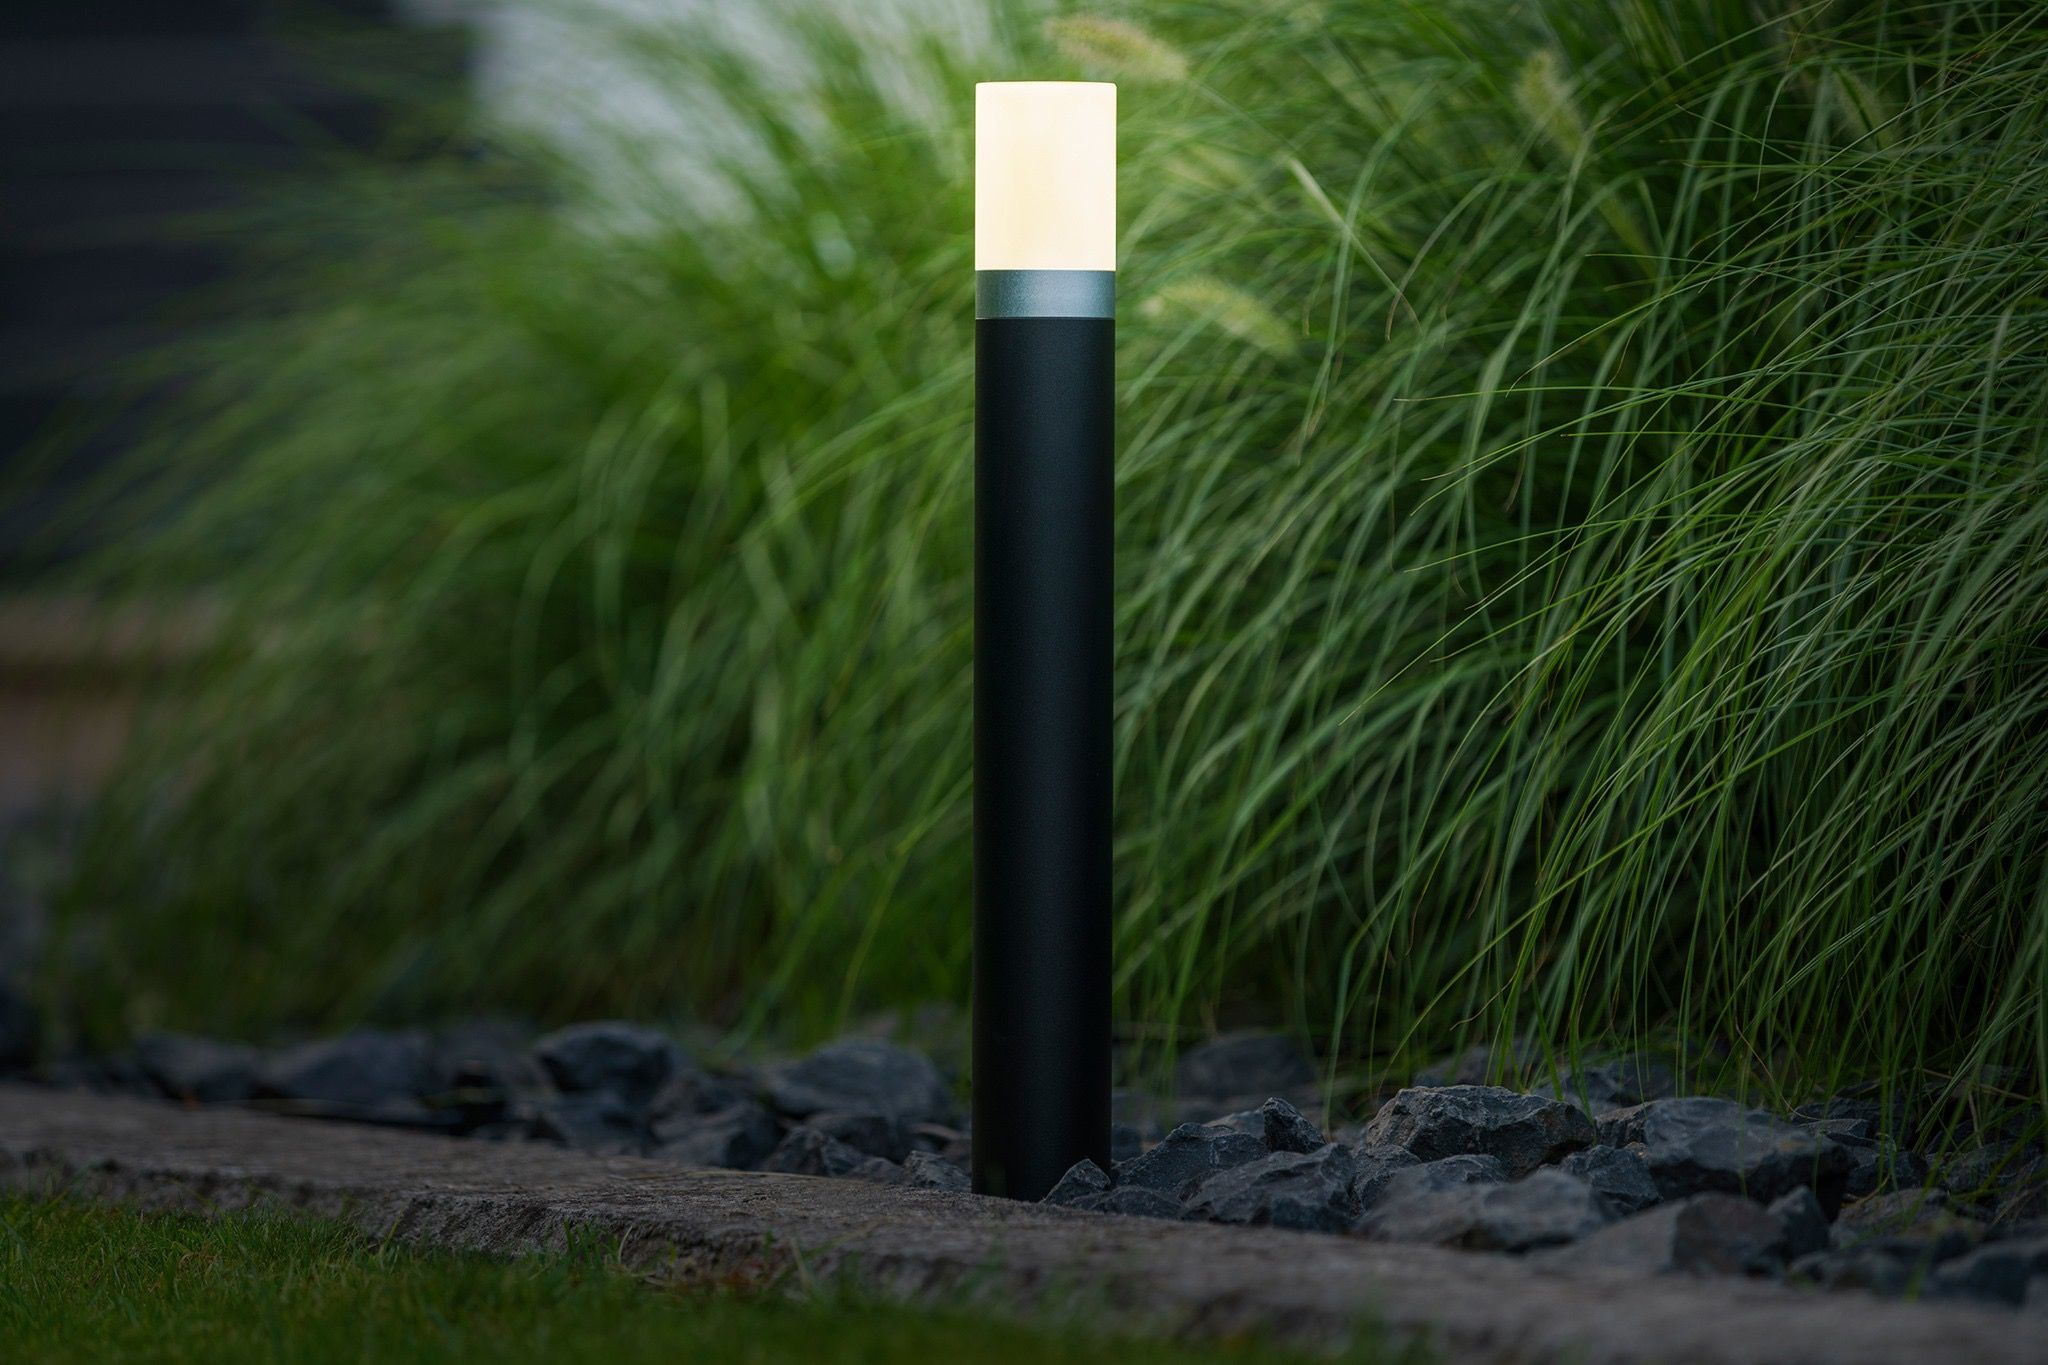 Lightpro 12v Barite 40 3w Ip44 Outdoor Garden Post Light Post Lights Outdoor Post Lights Outdoor Lighting Systems